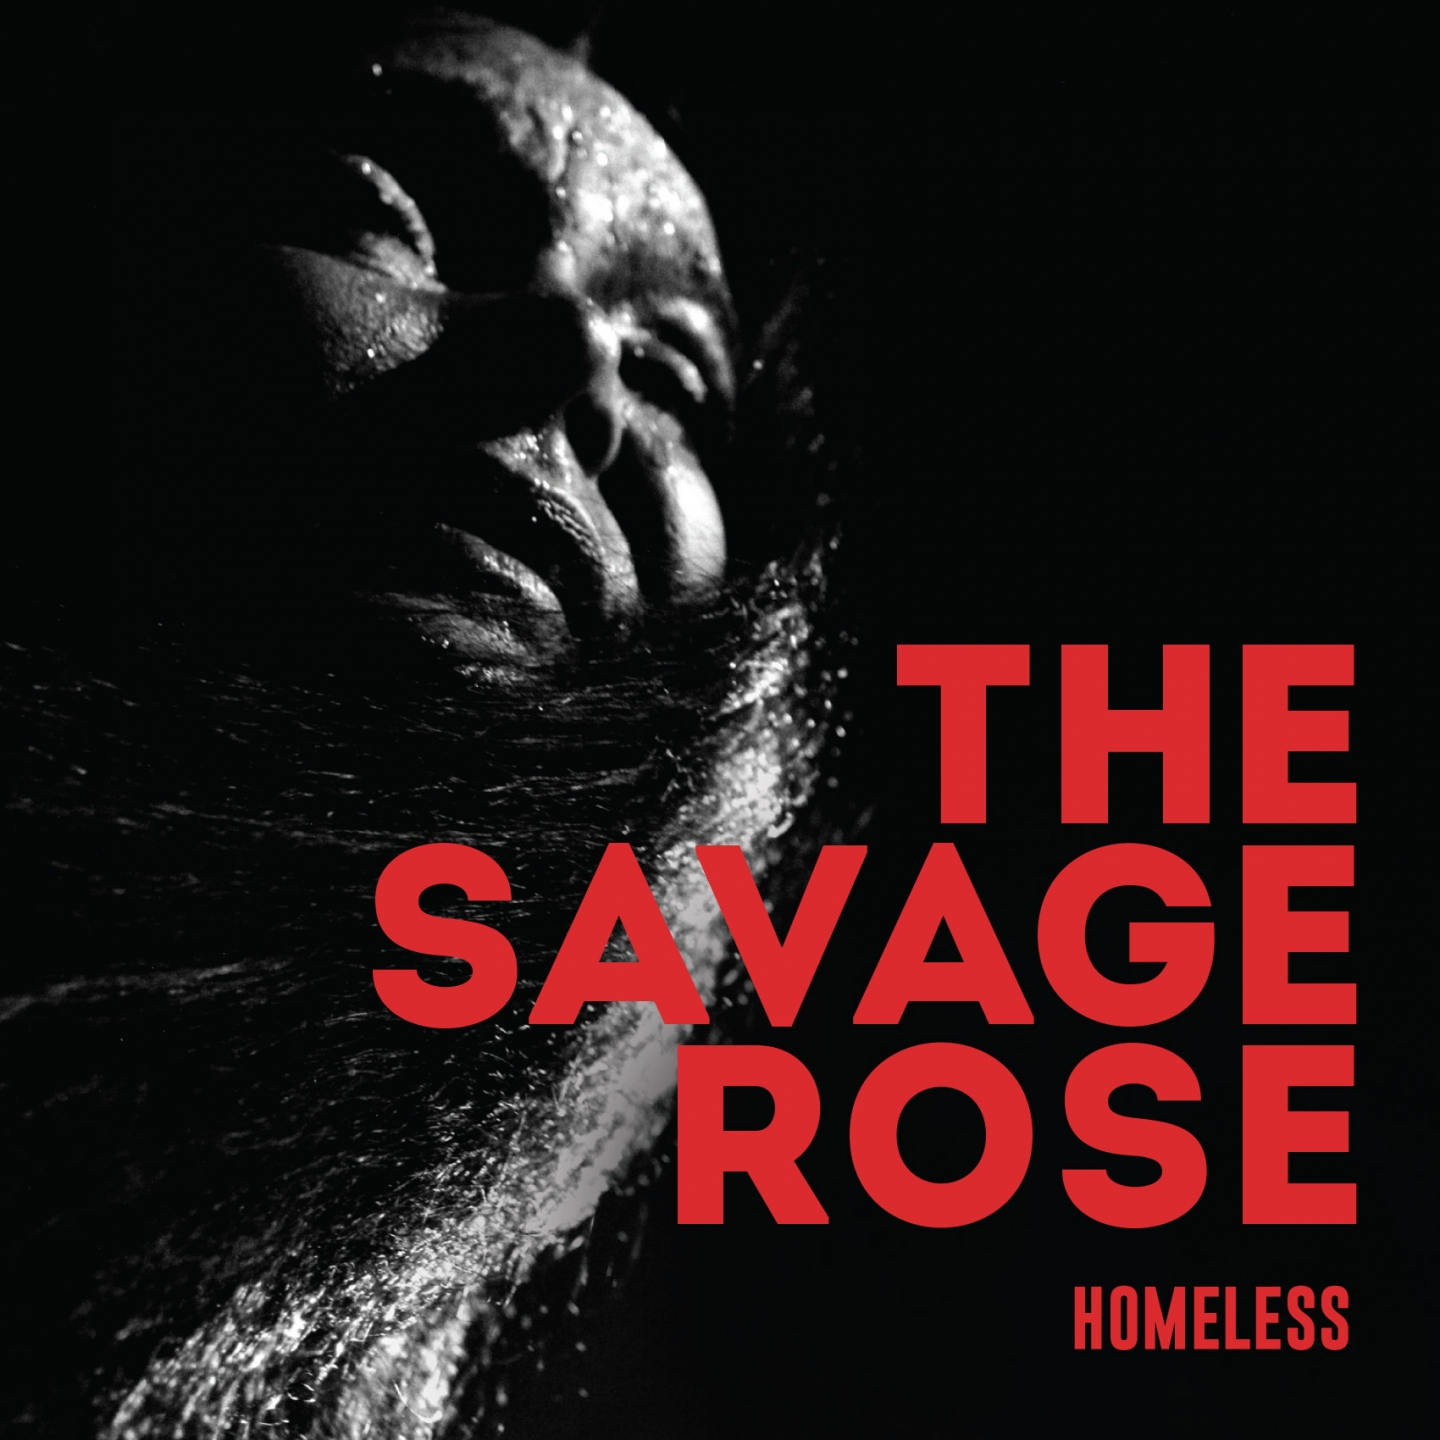 The Savage Rose – 'Homeless' (Album)